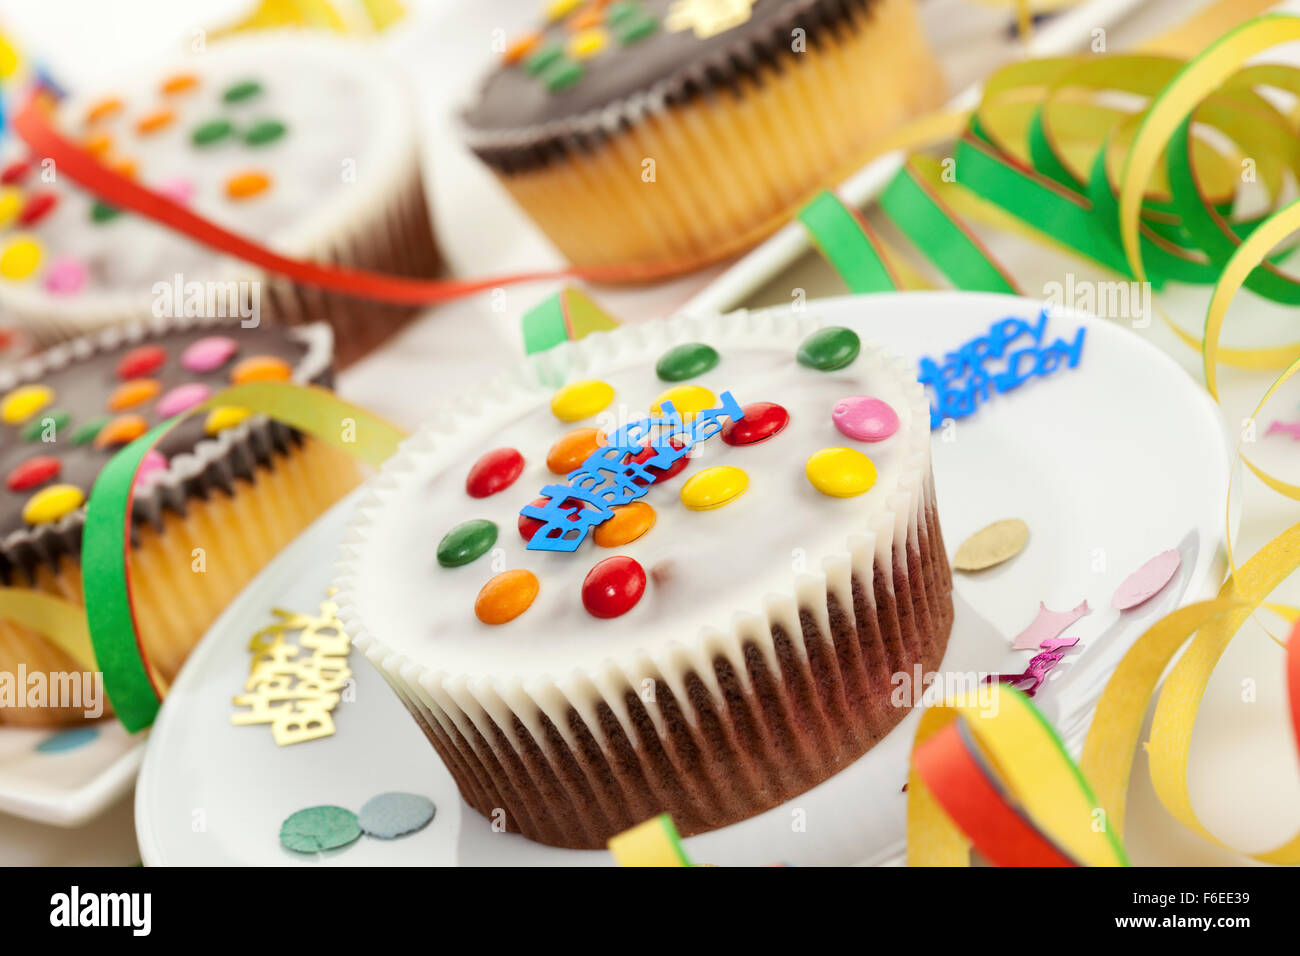 Birthday cakes and streamers - Stock Image